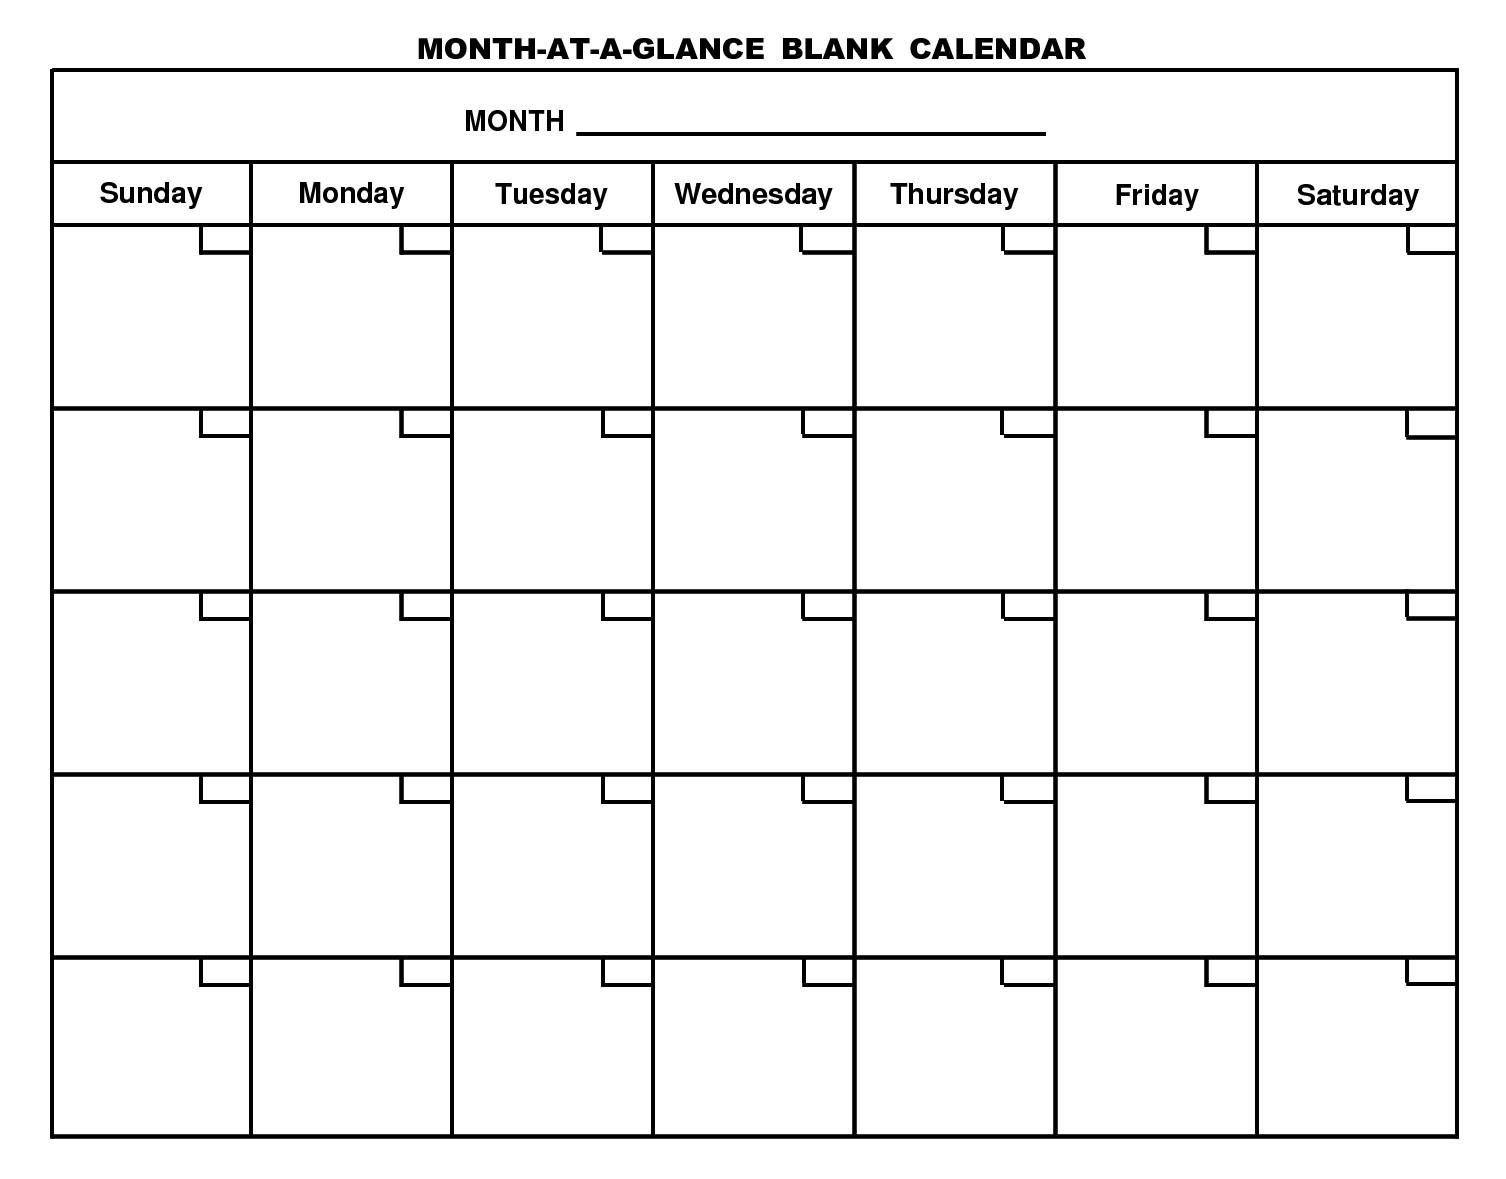 Pinstacy Tangren On Work | Blank Monthly Calendar